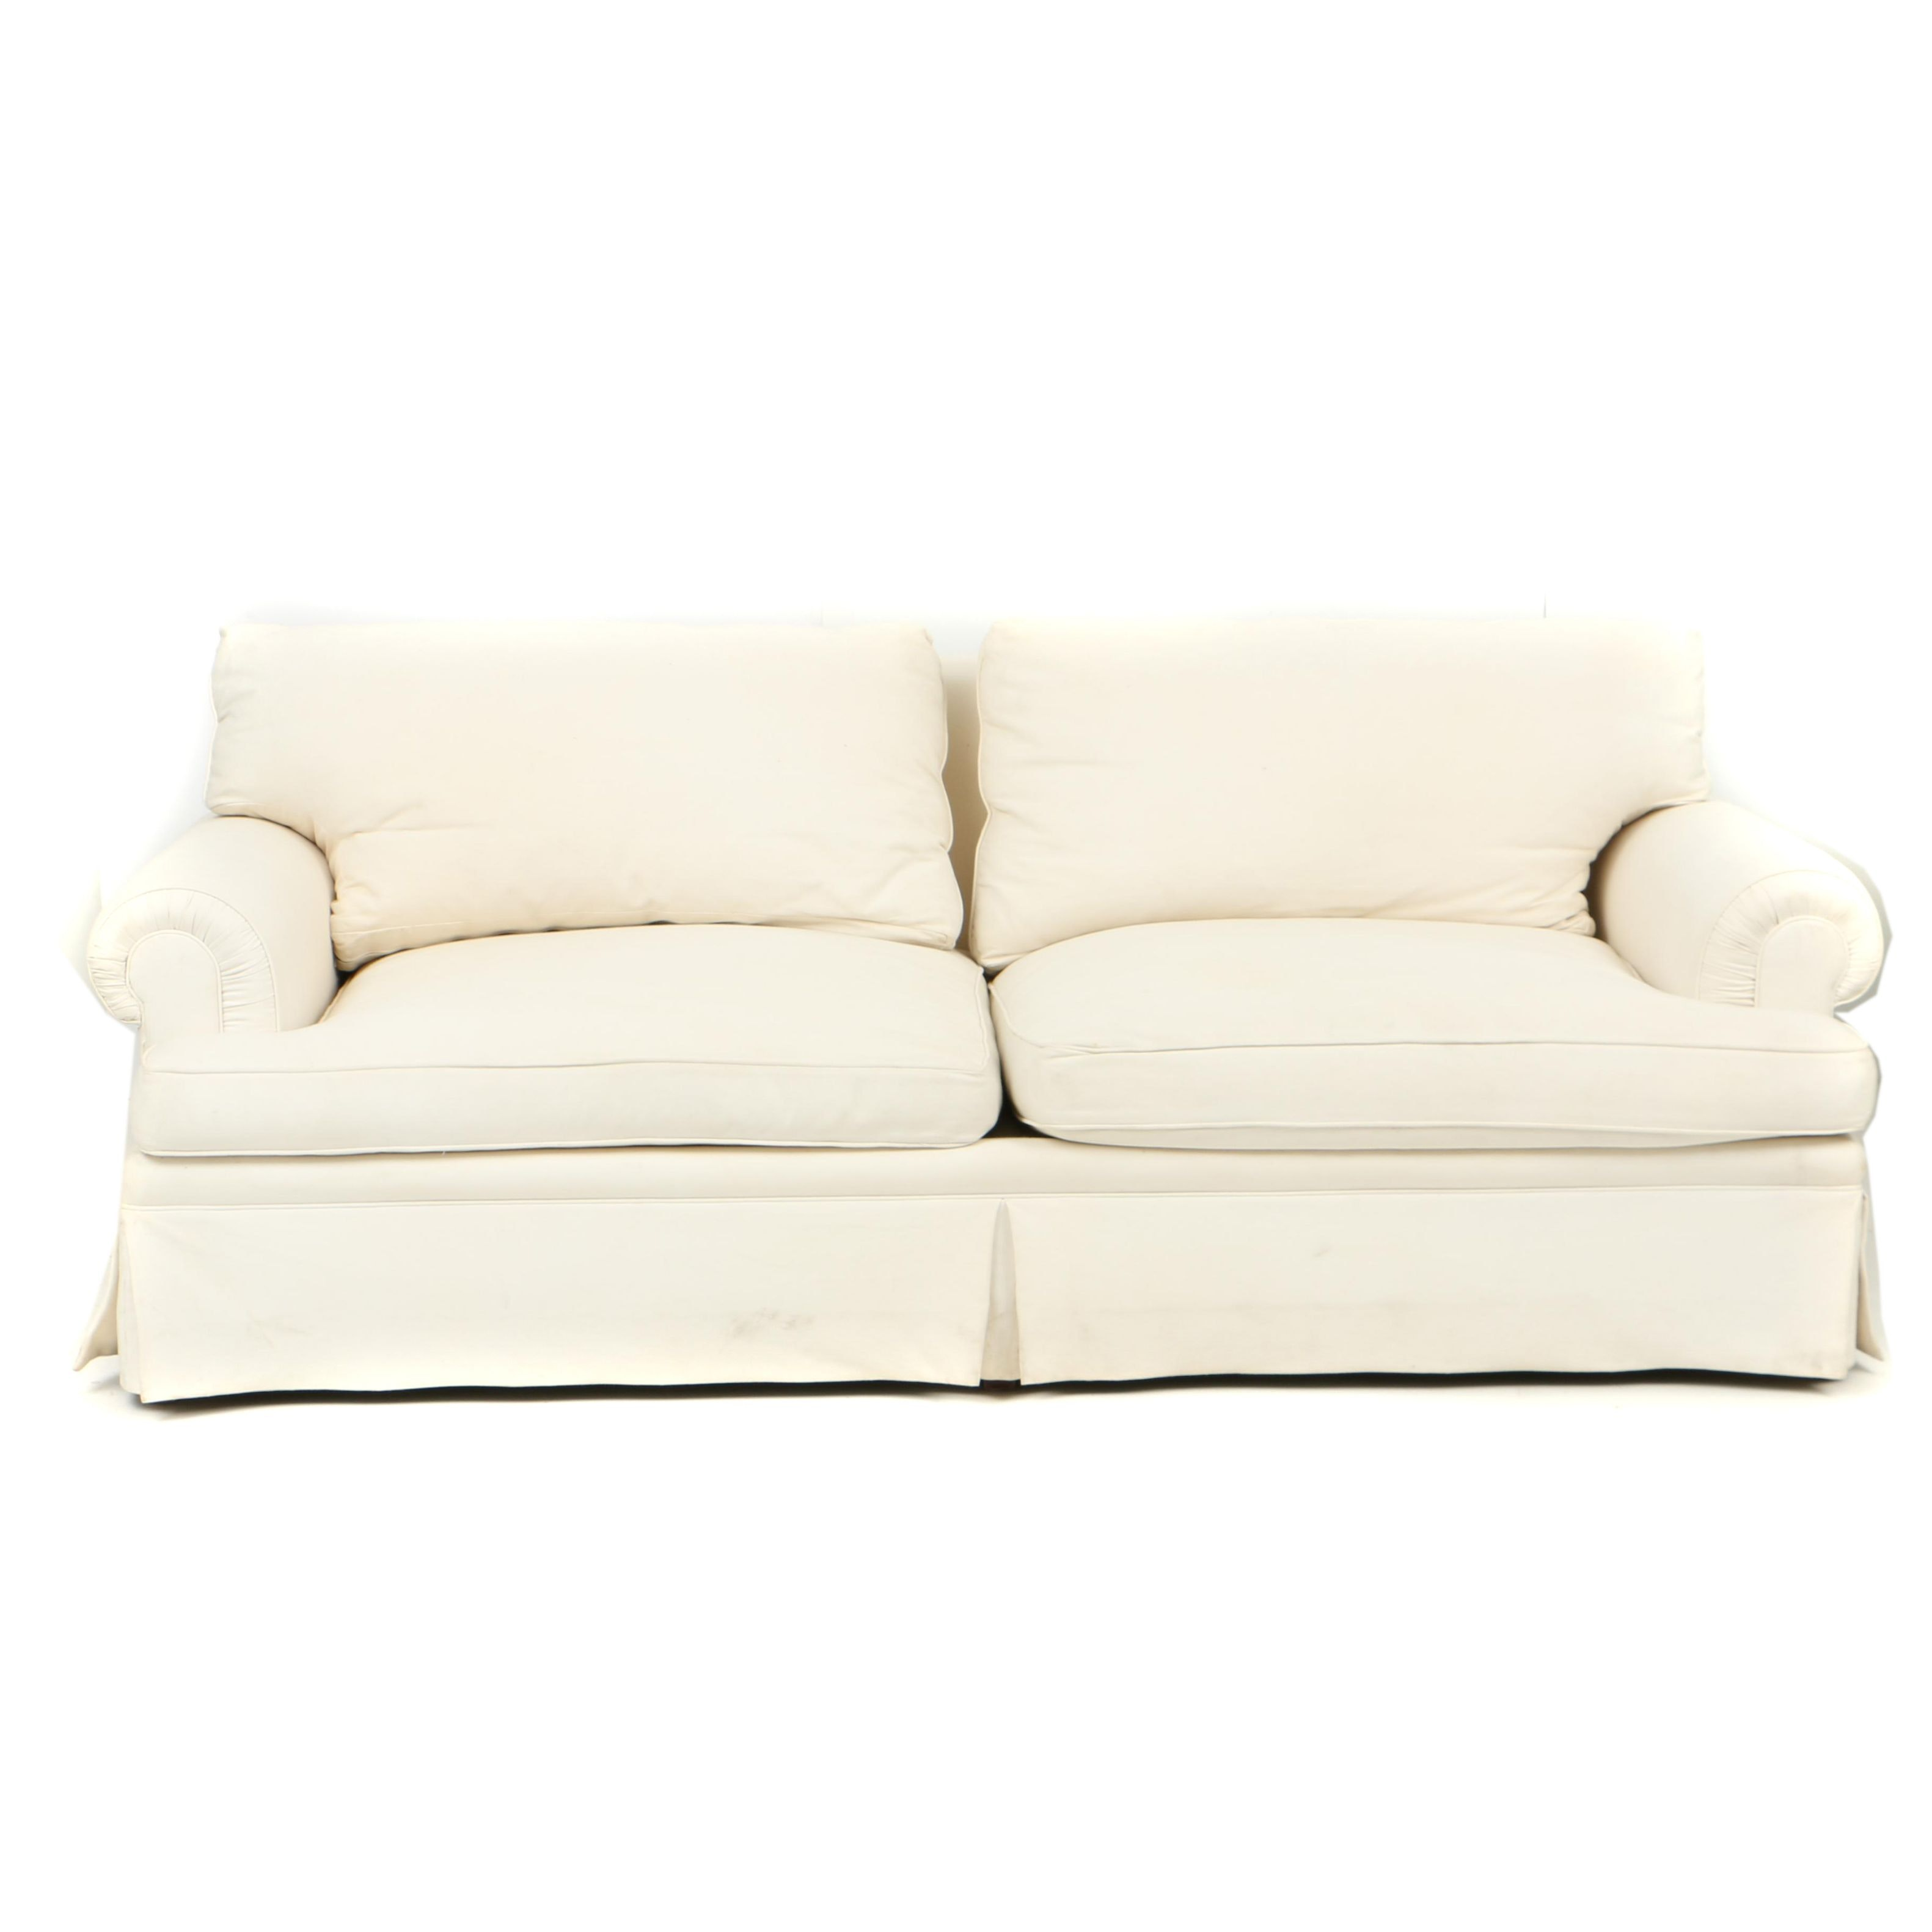 Beau TRS Furniture Inc. White Sofa With Down Filled Cushions ...